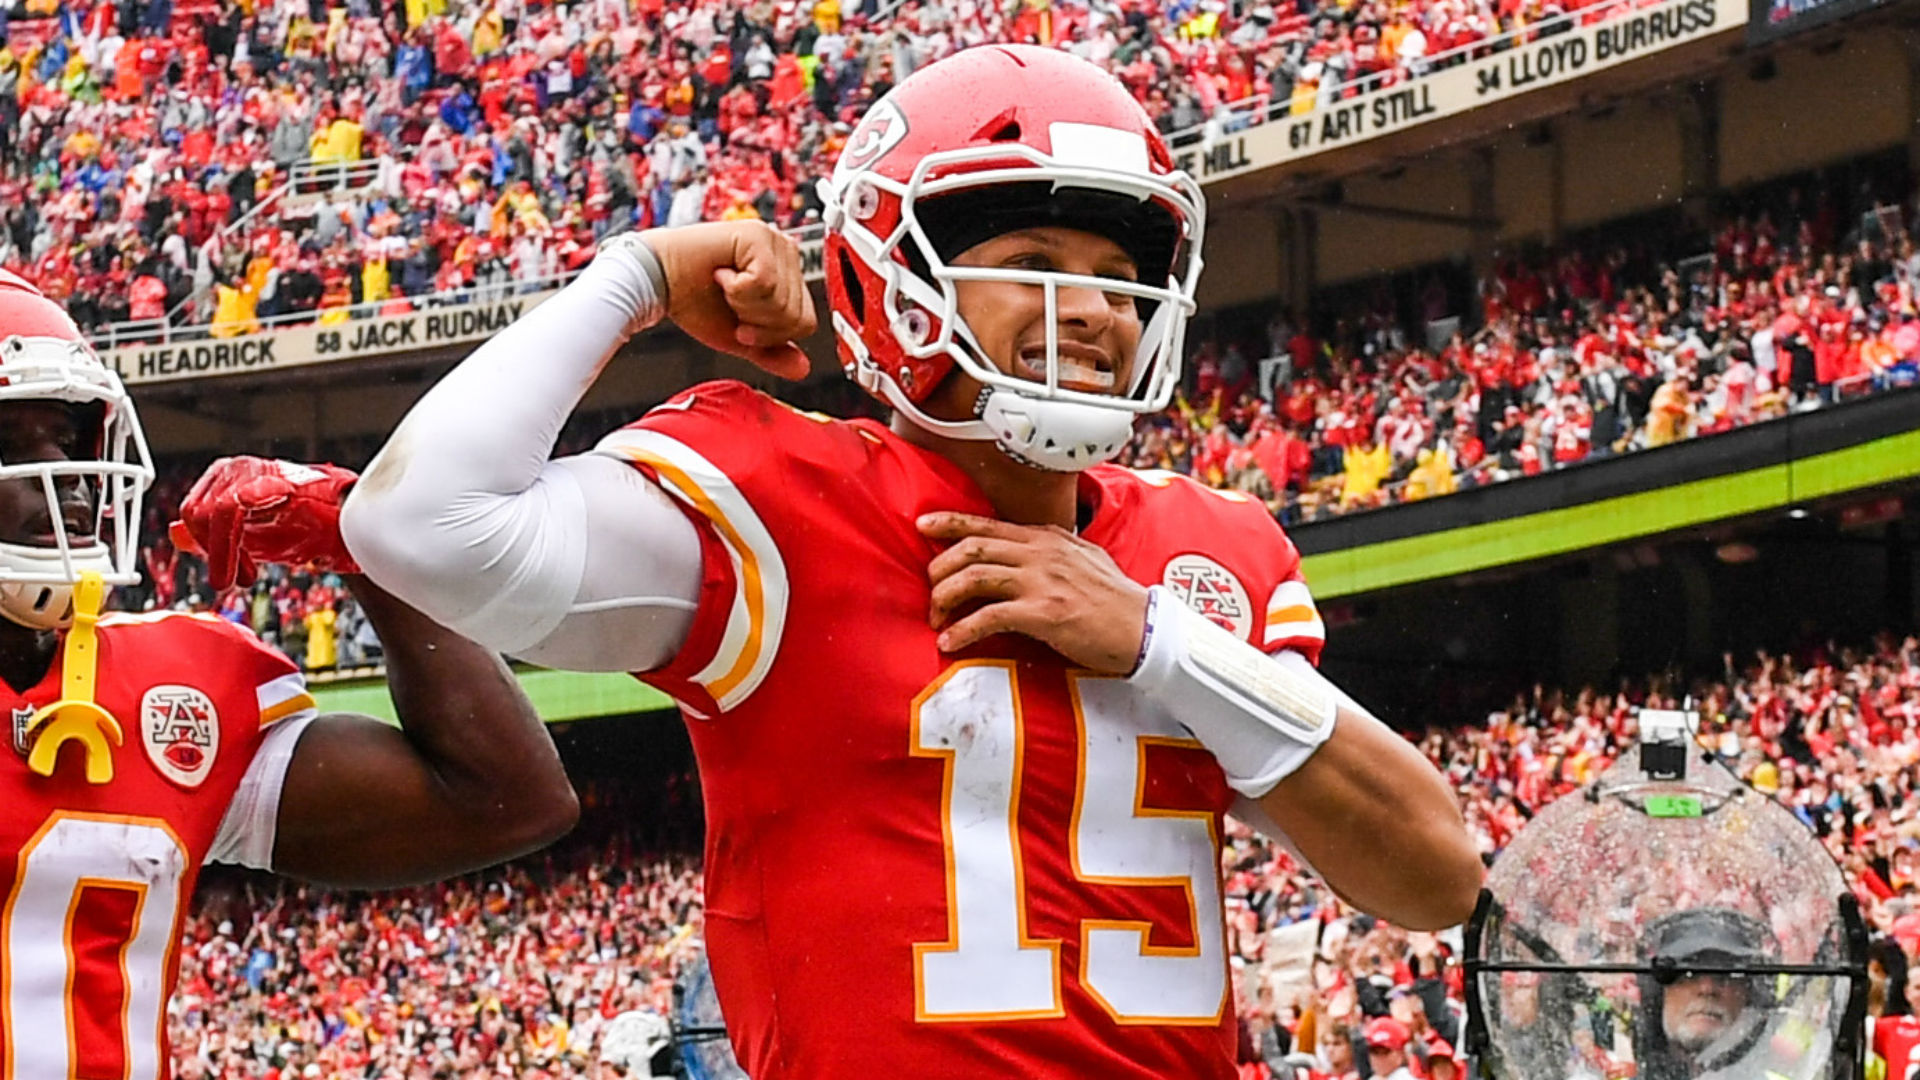 854d748d9c1 Mahomes confident he'd win throwing contest with Allen | Sporting News